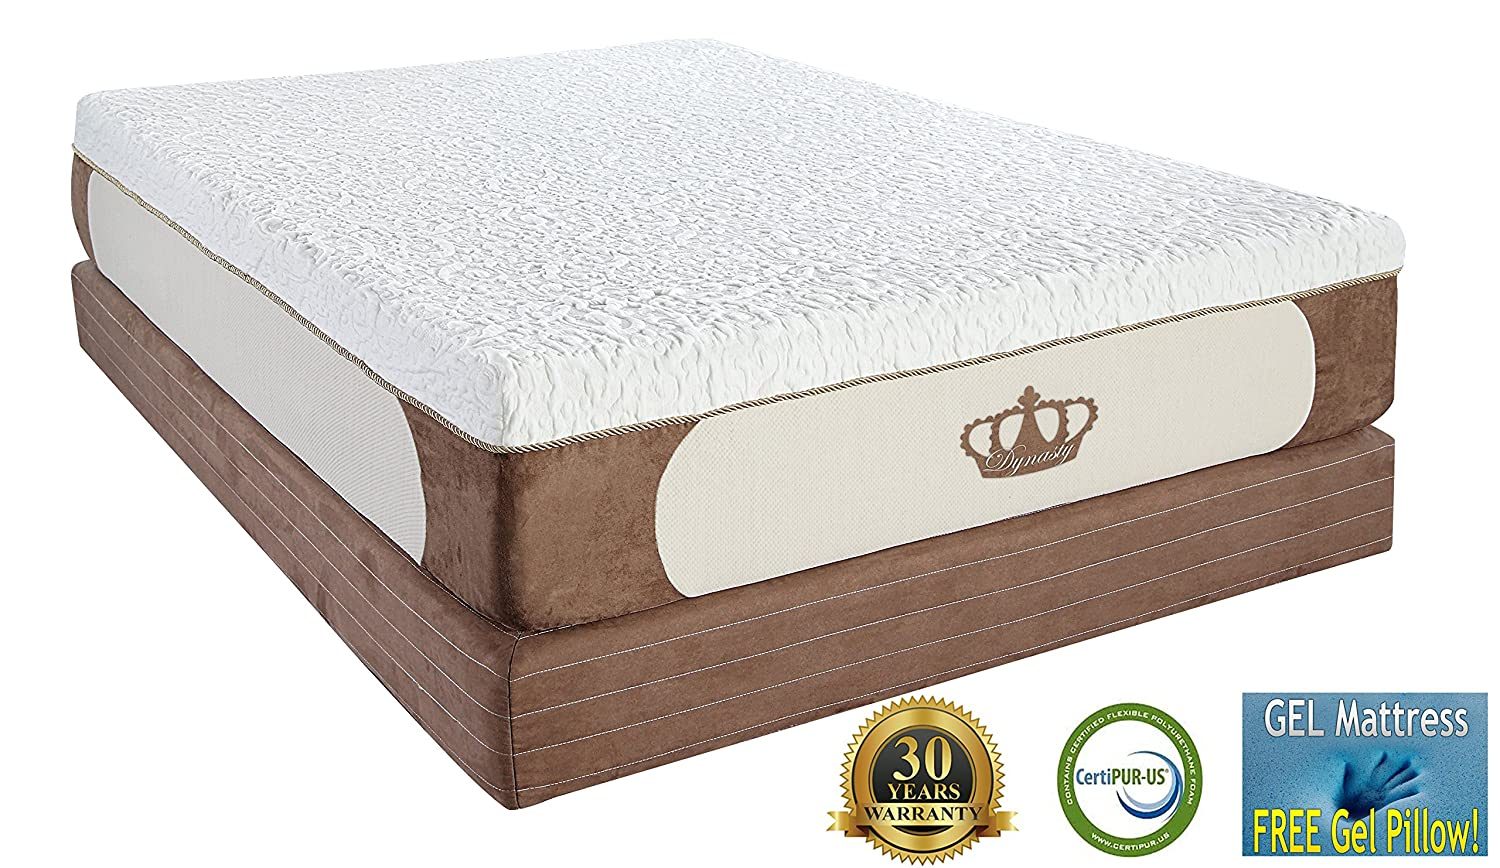 DynastyMattress New Cool Breeze 12-Inch Gel Memory Foam Mattress Review